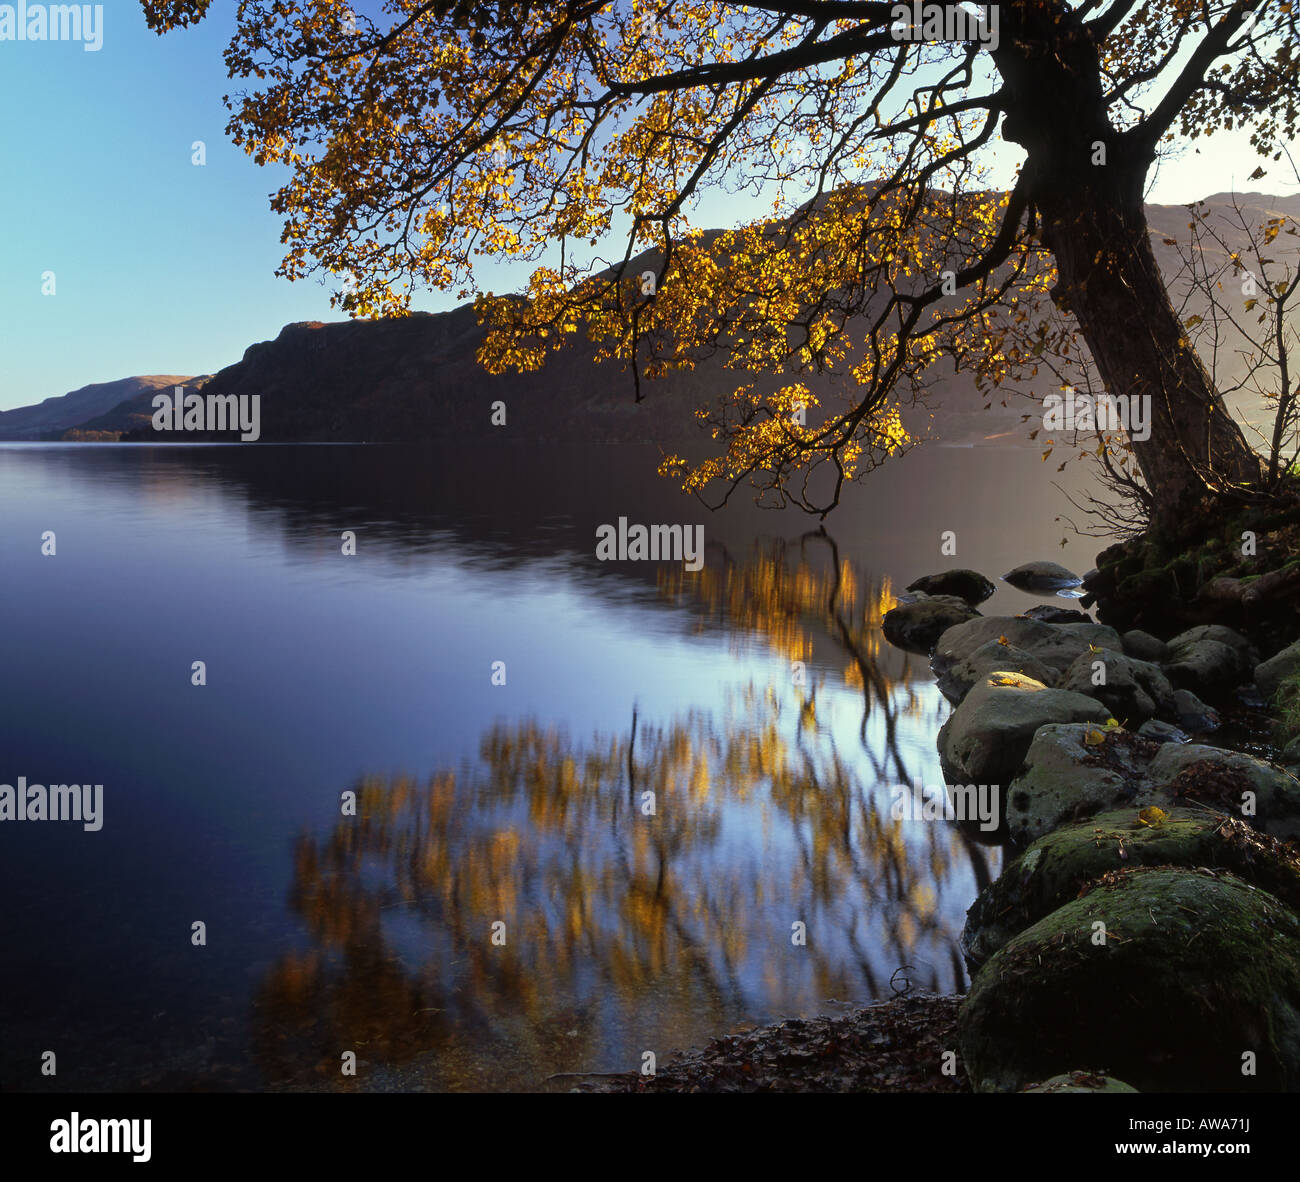 Autumn on Ullswater and Patterdale Common, Ullswater, Lake District National Park, Cumbria, England, UK - Stock Image